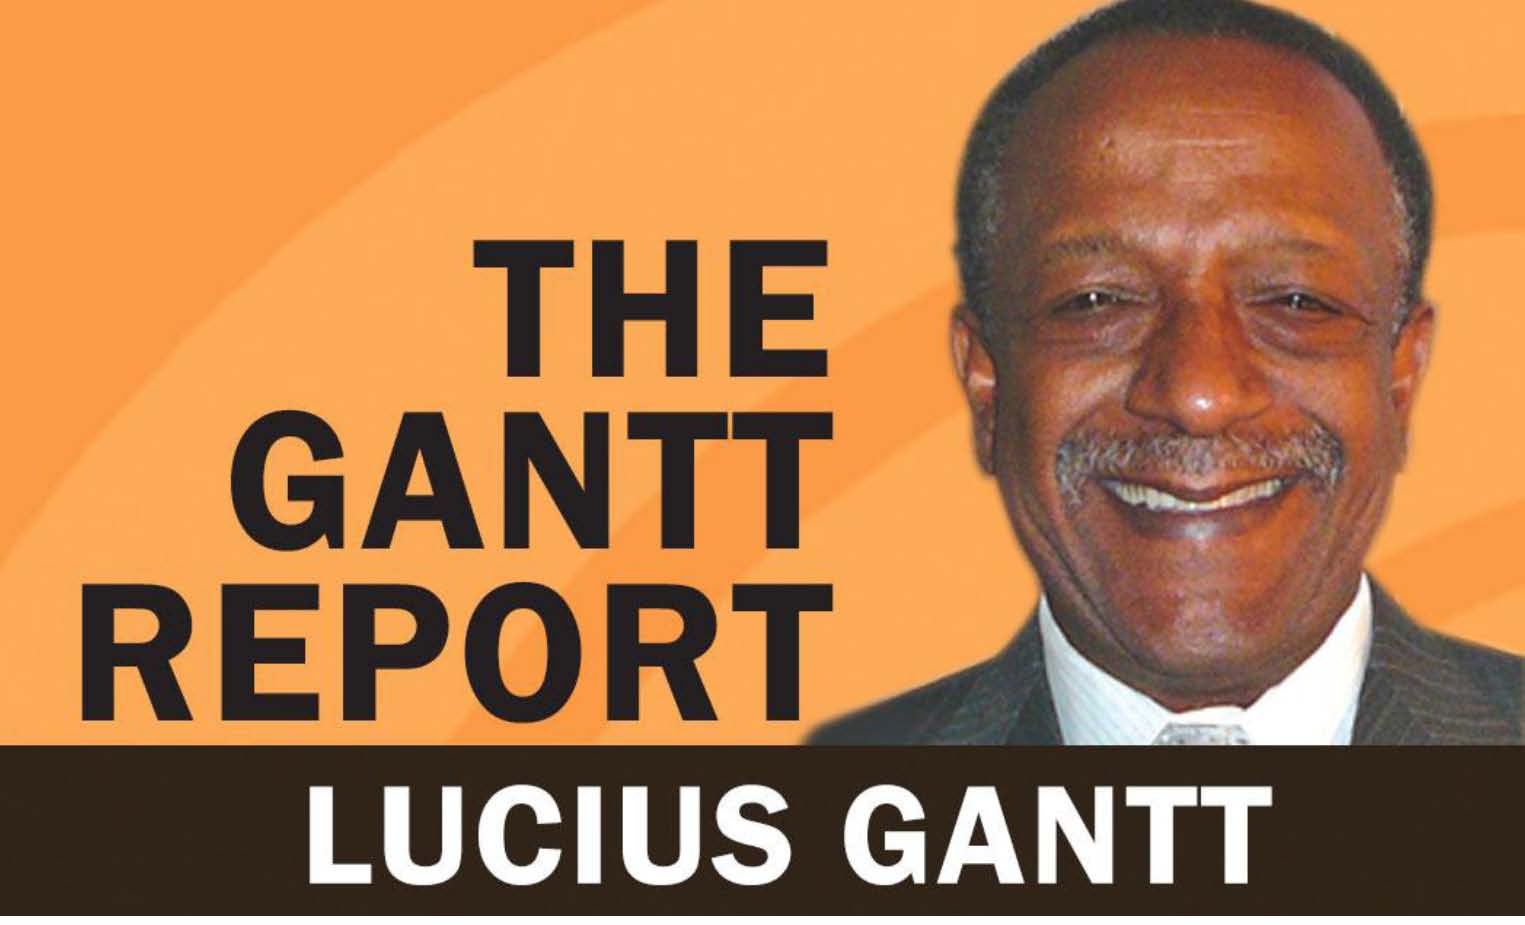 The Gantt Report – Ignorance and Trickeration